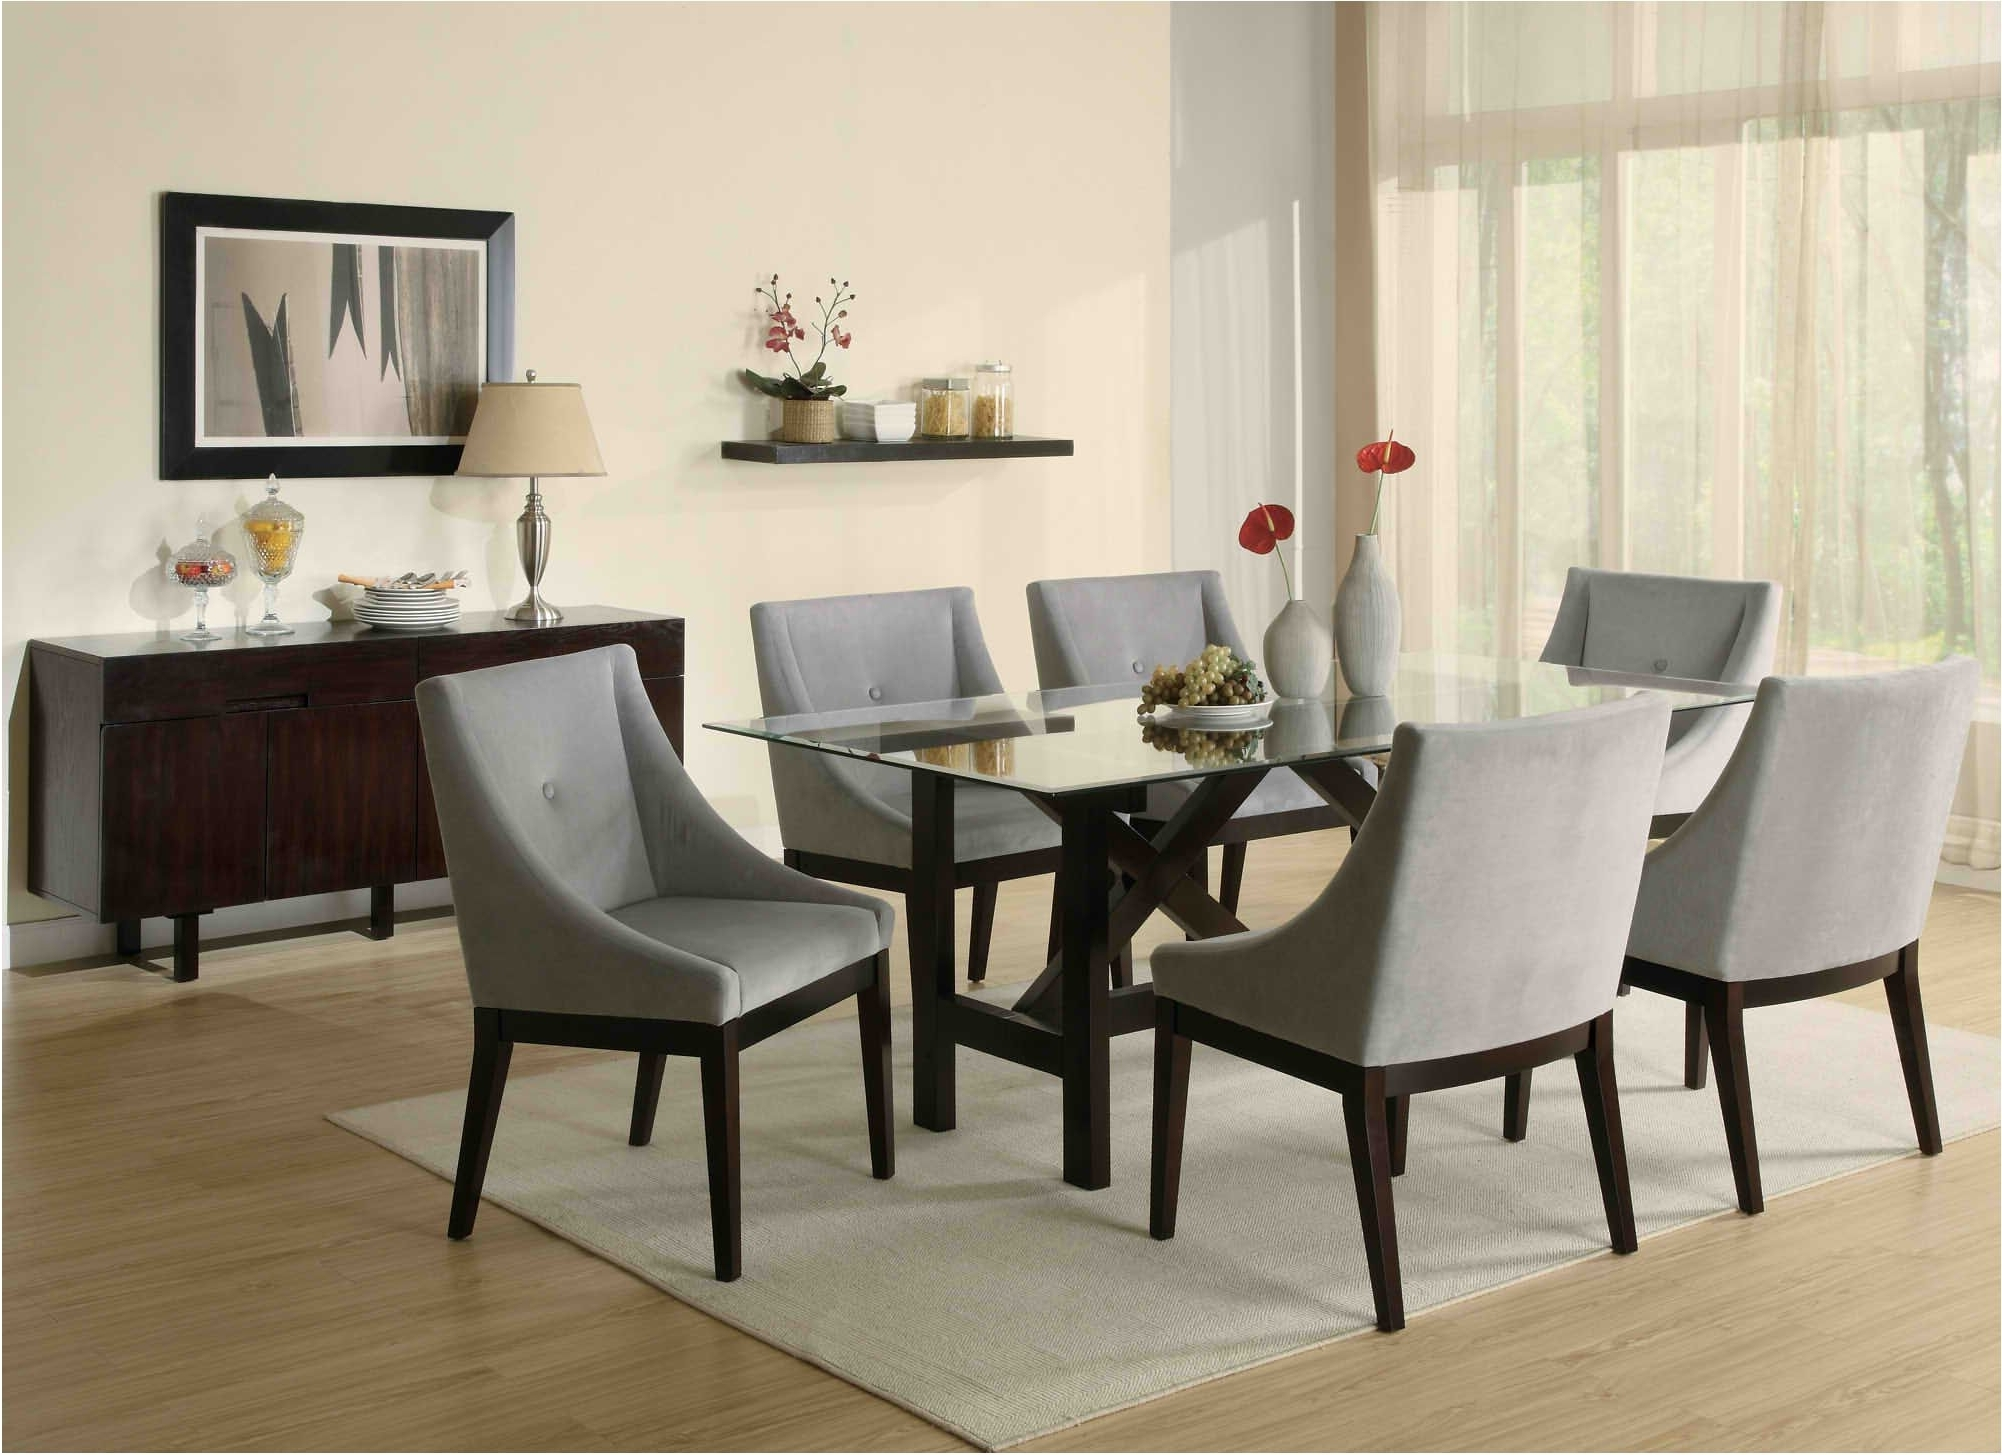 Recent Modern Dining Table And Chairs Inside Remarkable Modern Dining Room Table Chairs Innovative With Images Of (View 22 of 25)